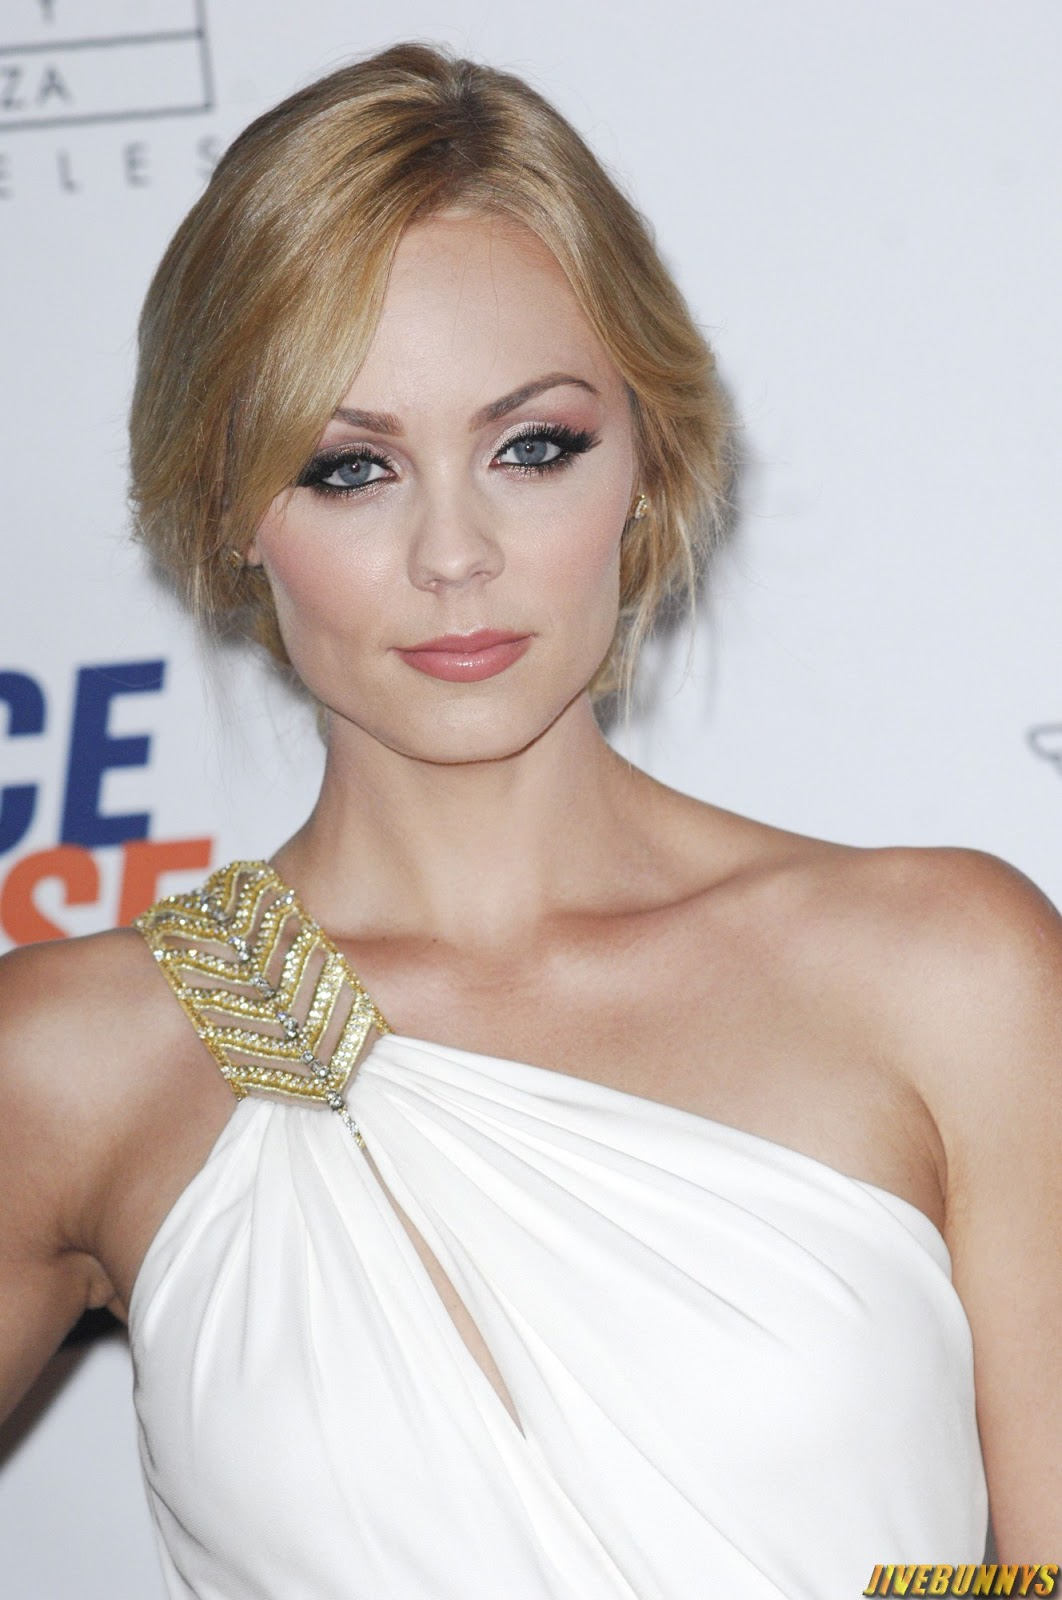 Laura Vandervoort Nude Photos